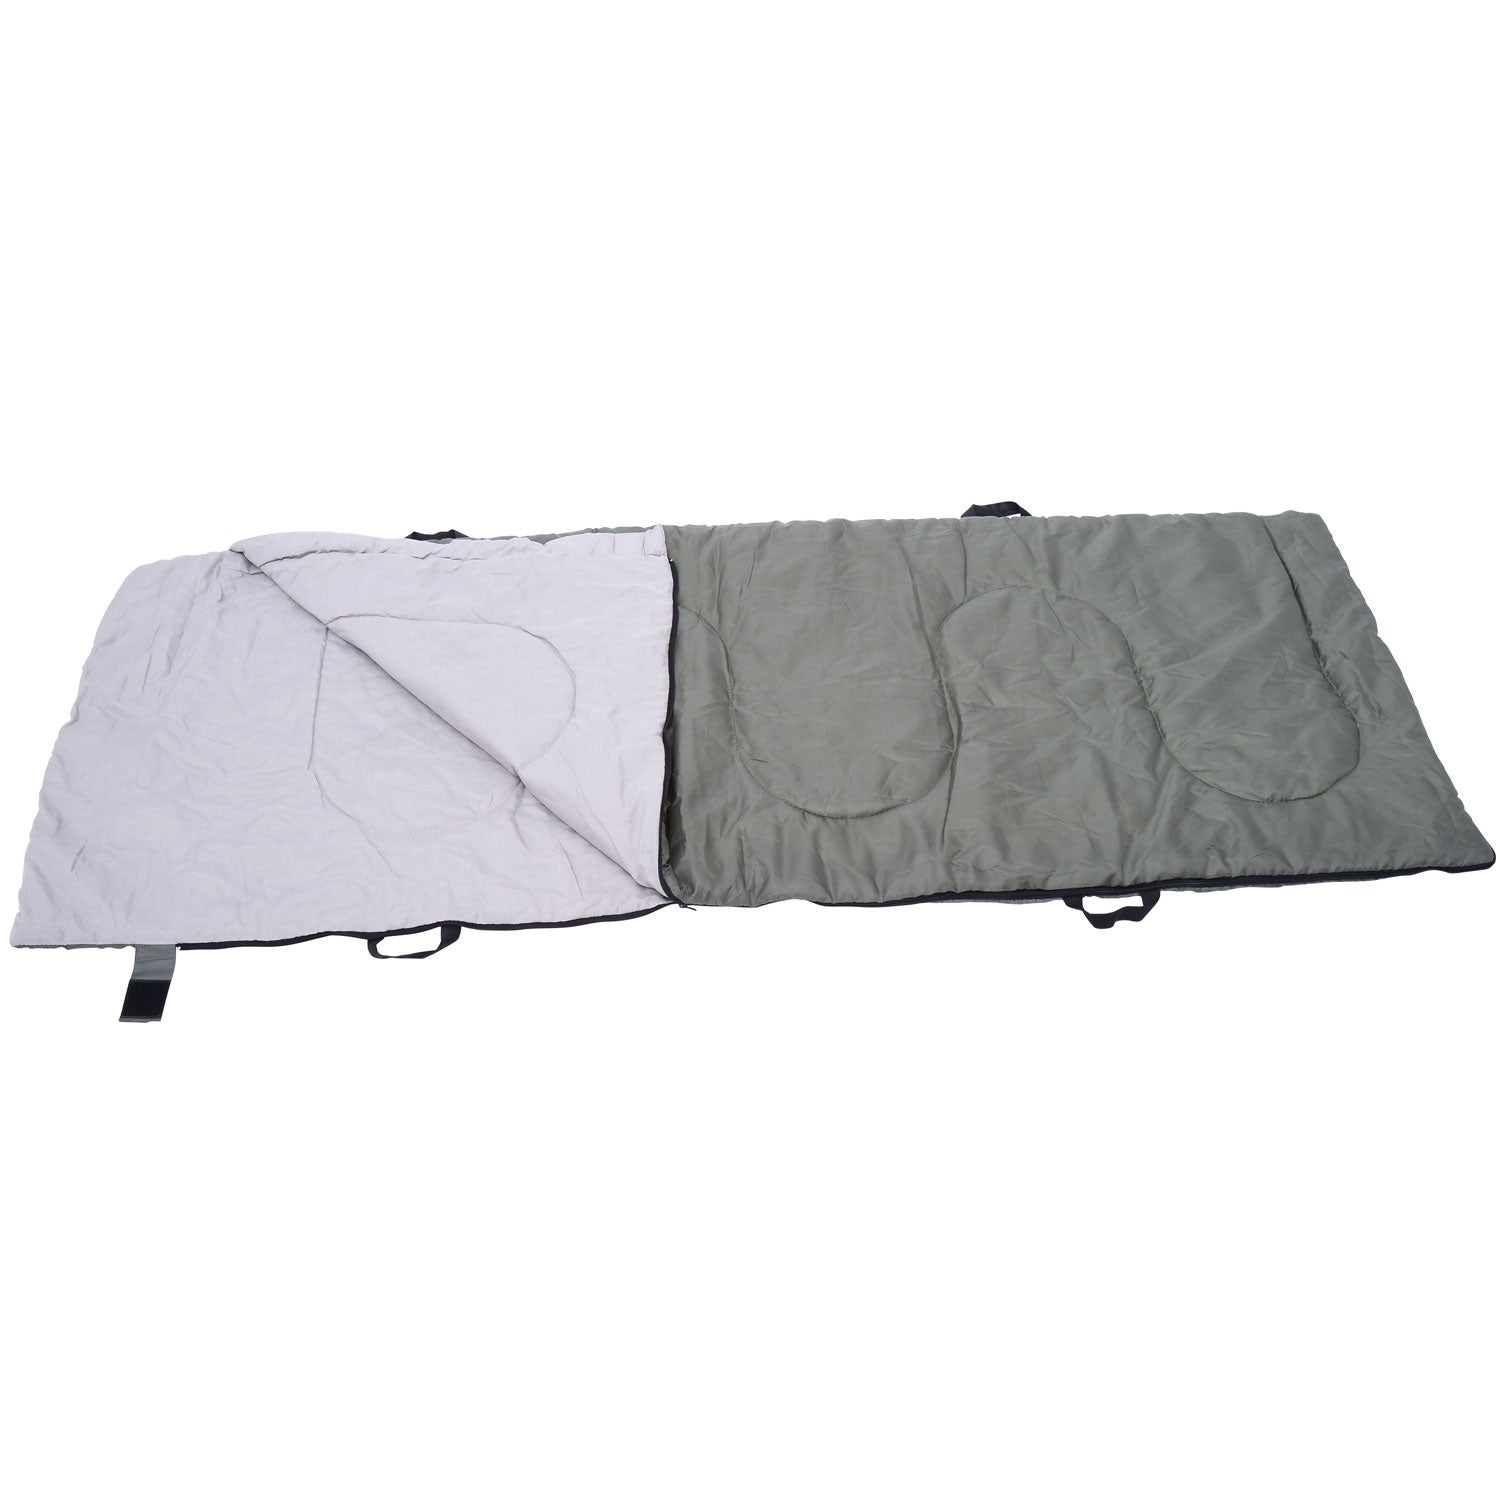 Outsunny Pop Up Tent Cot With Air Mattress And Sleeping Bag Combo Free Shipping Today 18004811